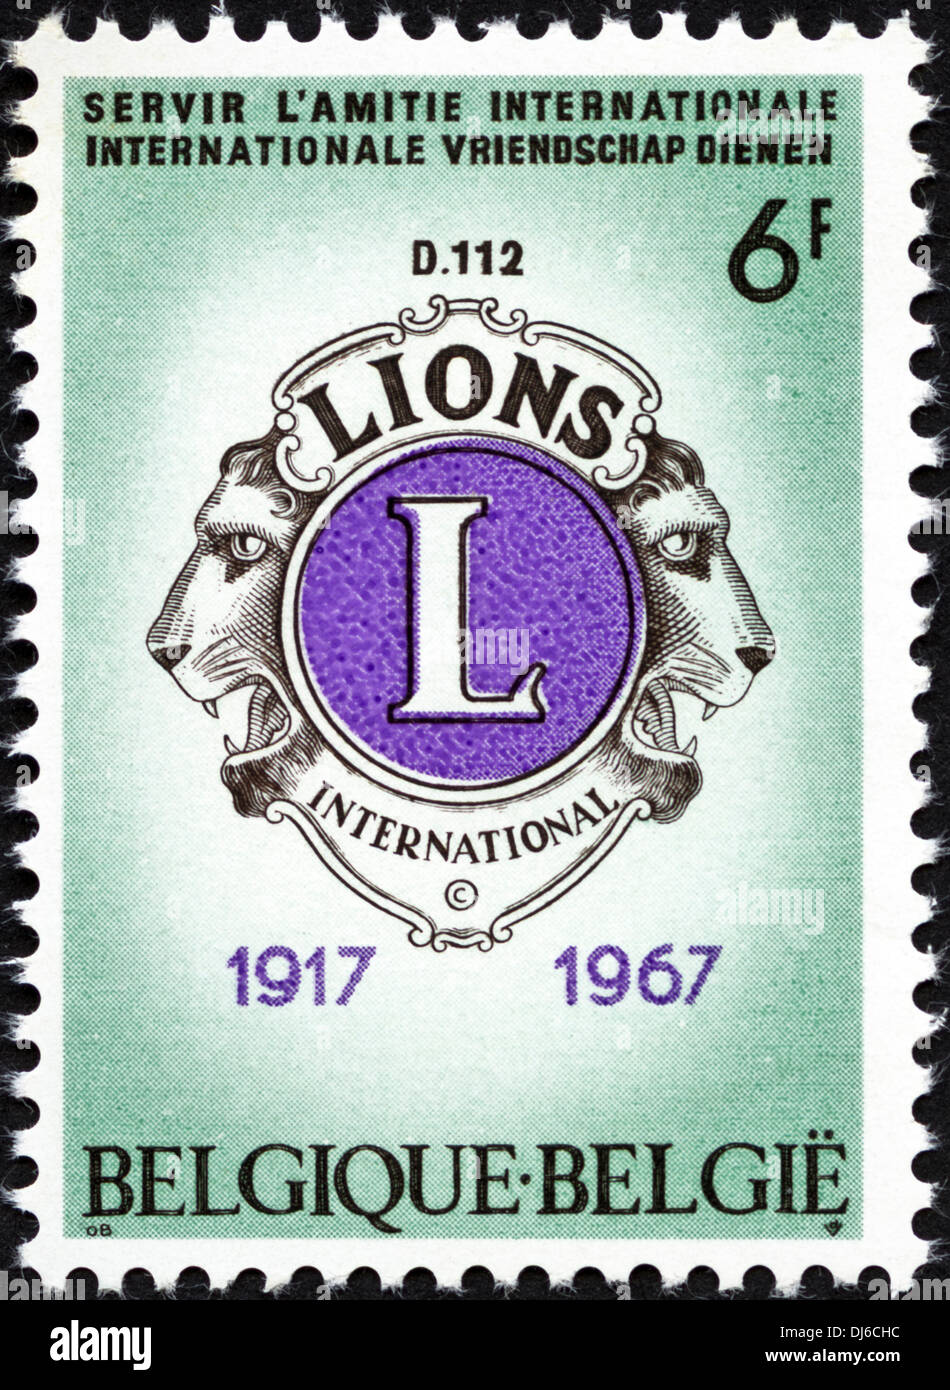 postage stamp Belgium 6F featuring Lions International 1917 - 1967 issued 1967 - Stock Image